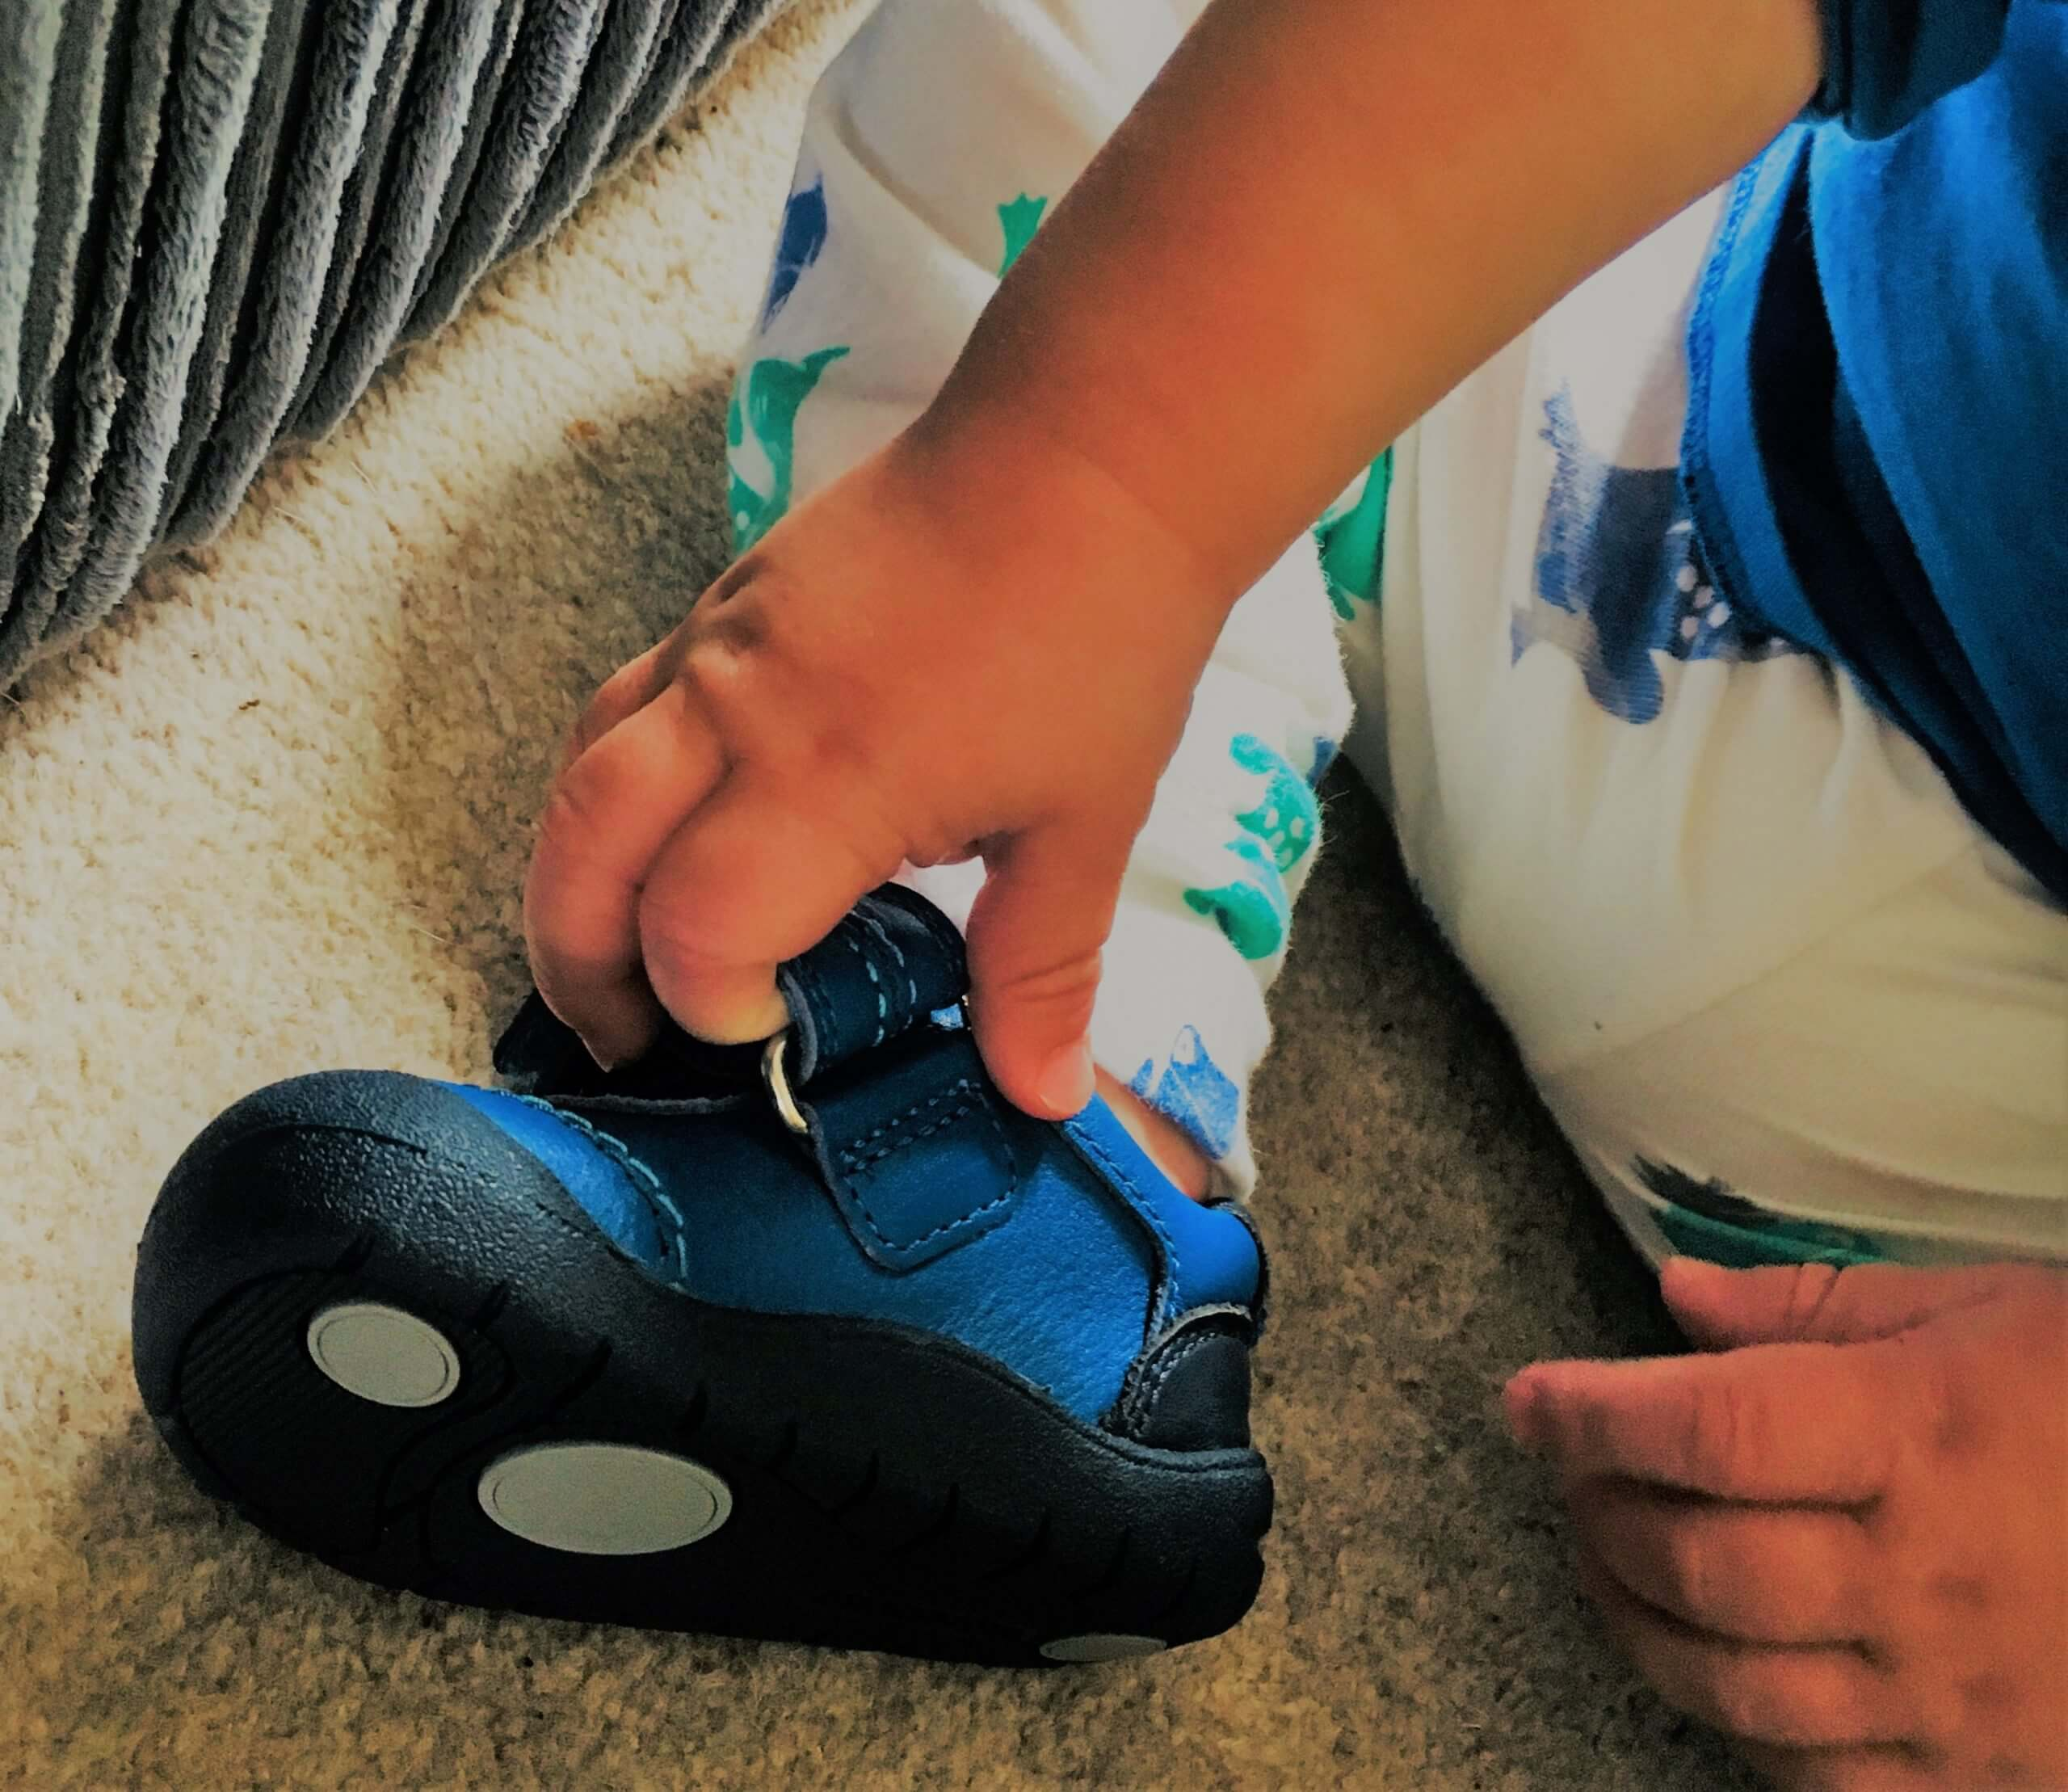 94ae3493a3 Start-Rite Shoes for Kids | Babies First Shoes - TheDadsNet